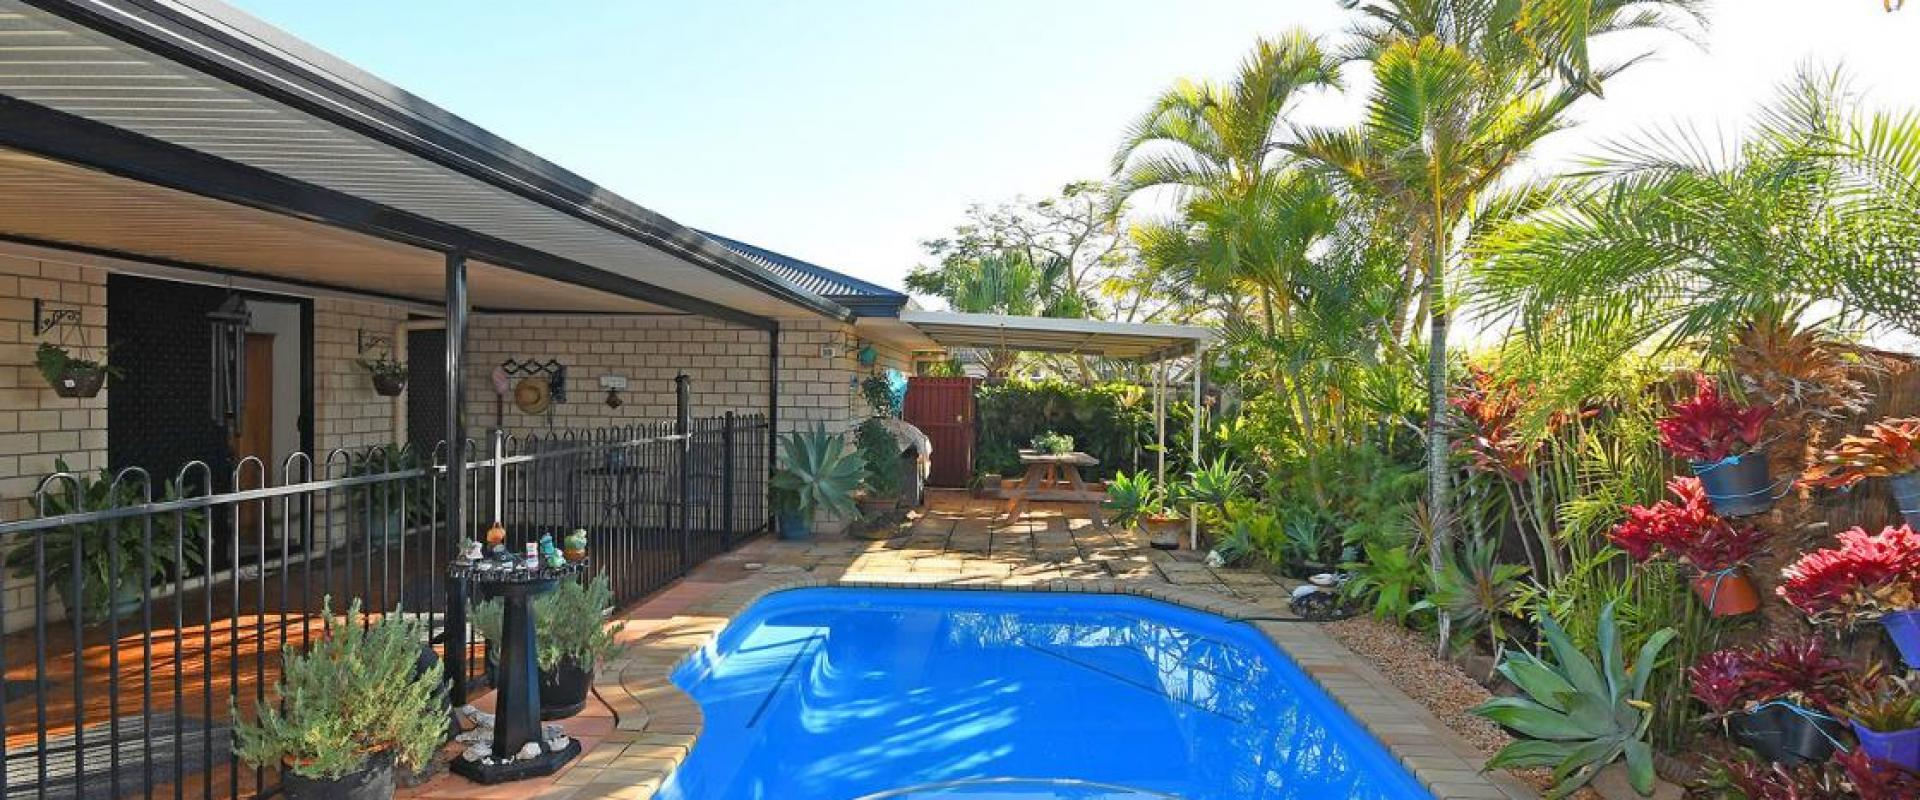 CORNER 811 SQM BLOCK, PRIVATE SWIMMING POOL, 6 x 6 DOUBLE SHED, AMPLE CARAVAN AND BOAT PARKING, 2 LIVING ROOMS, LARGE COVERED ALFRESCO, SOLAR H WATER